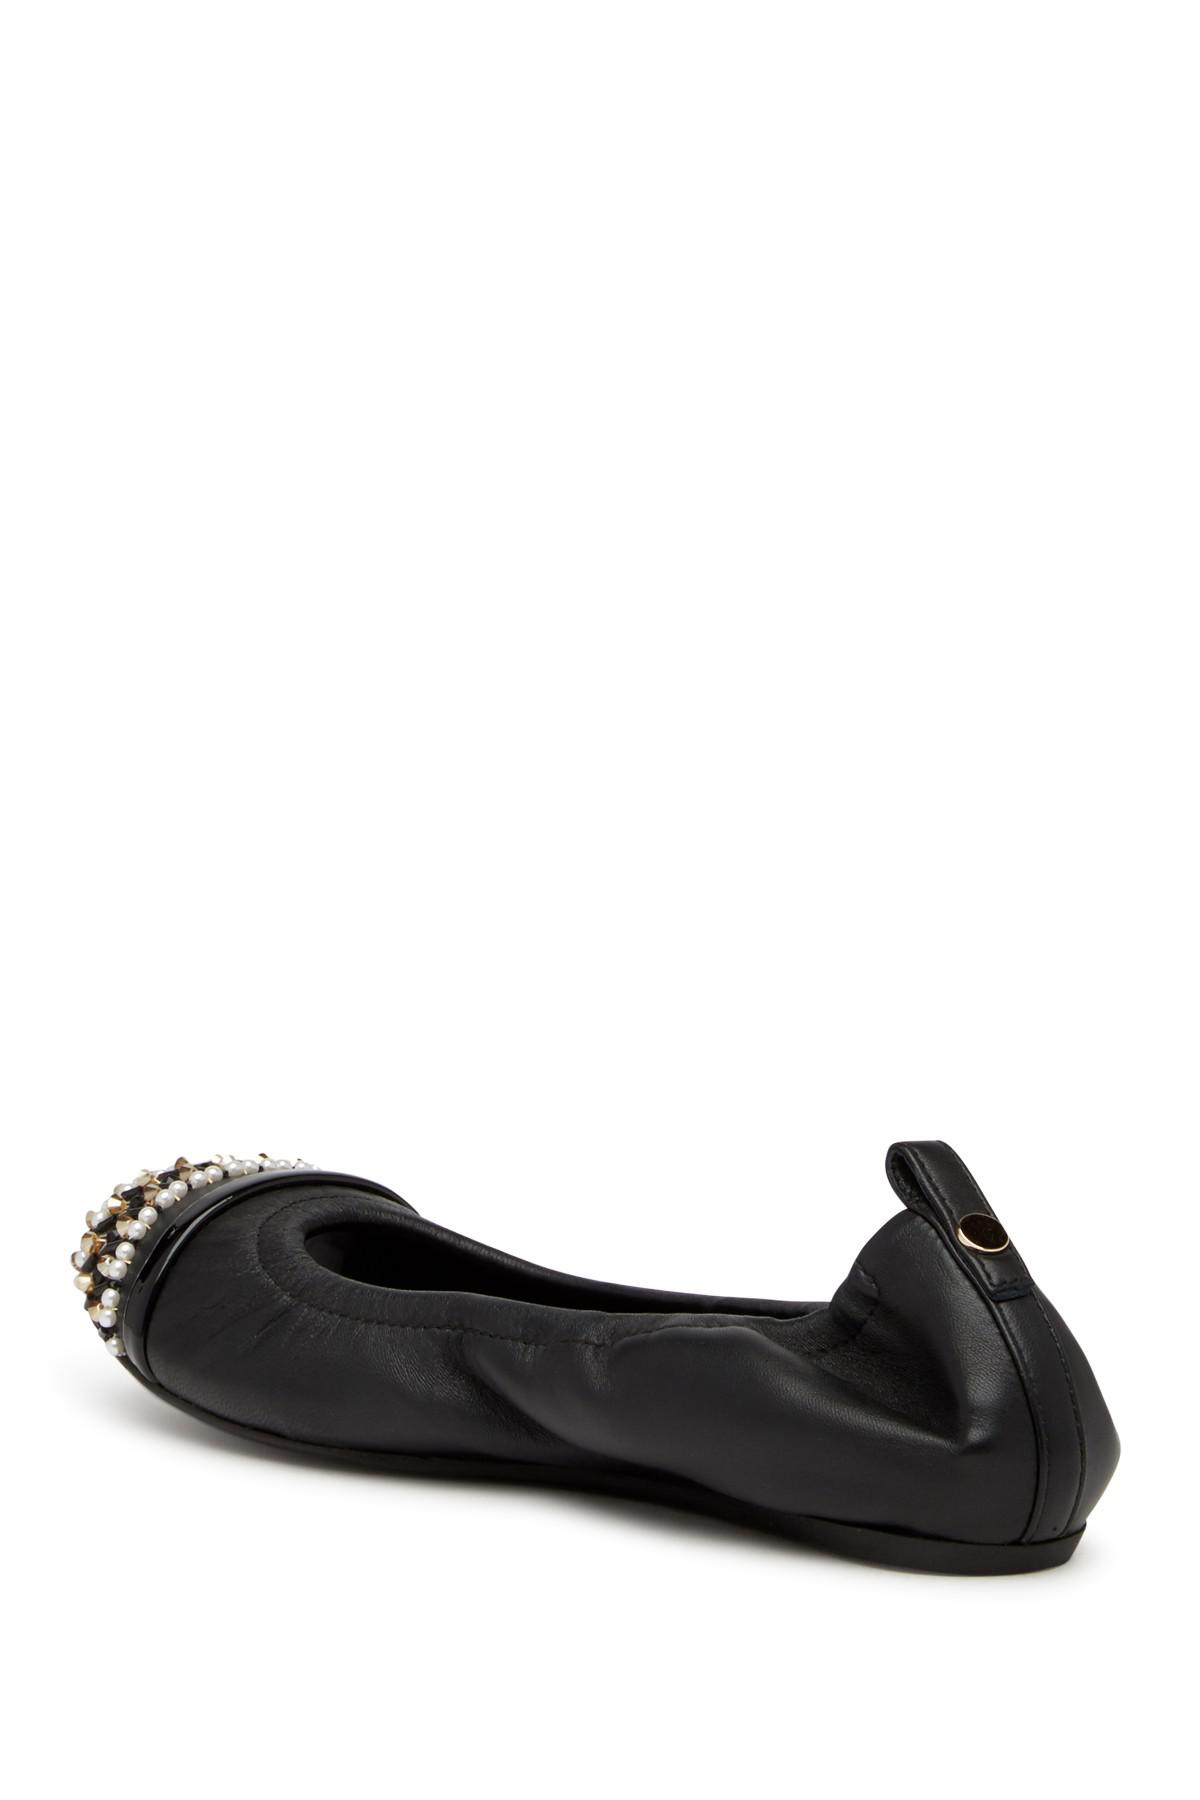 Lanvin Lanvin Leather Beaded and Faux Pearl Embellished Flat Q5LfW